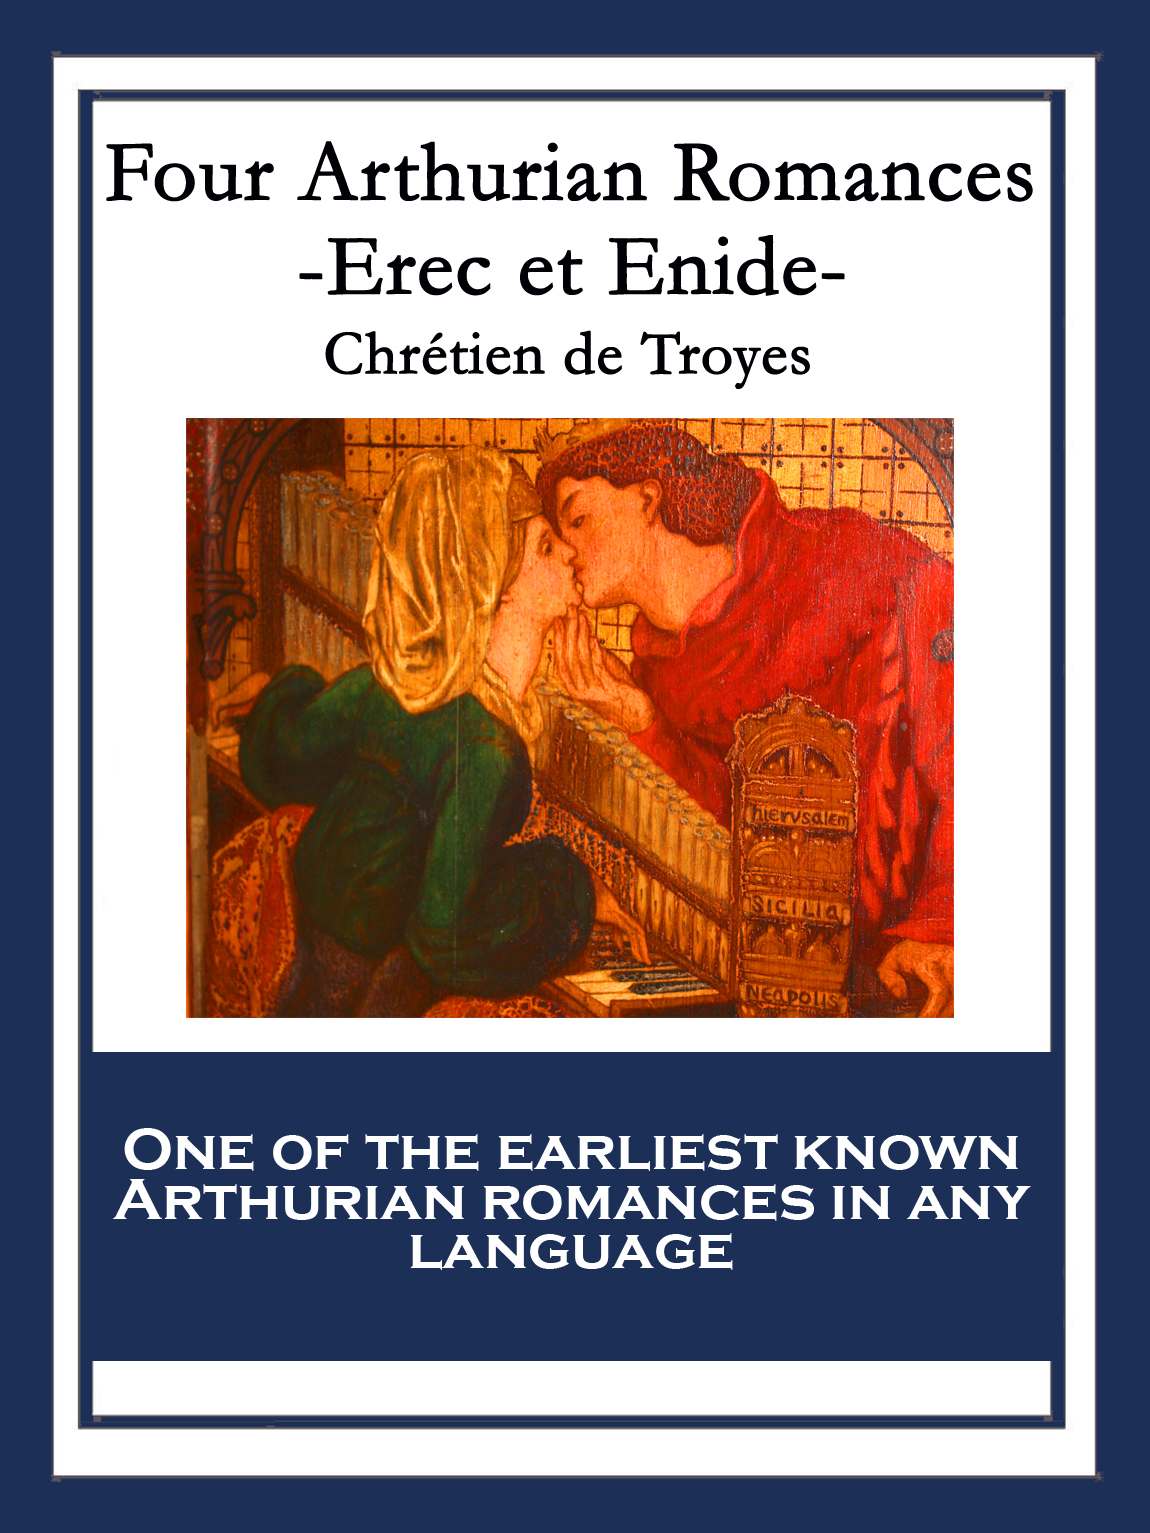 chretien de troyess romances essay 48 arthuriana chrétien de troyes's cligés in the medieval mediterranean notes 1 research for this essay was other romances are.